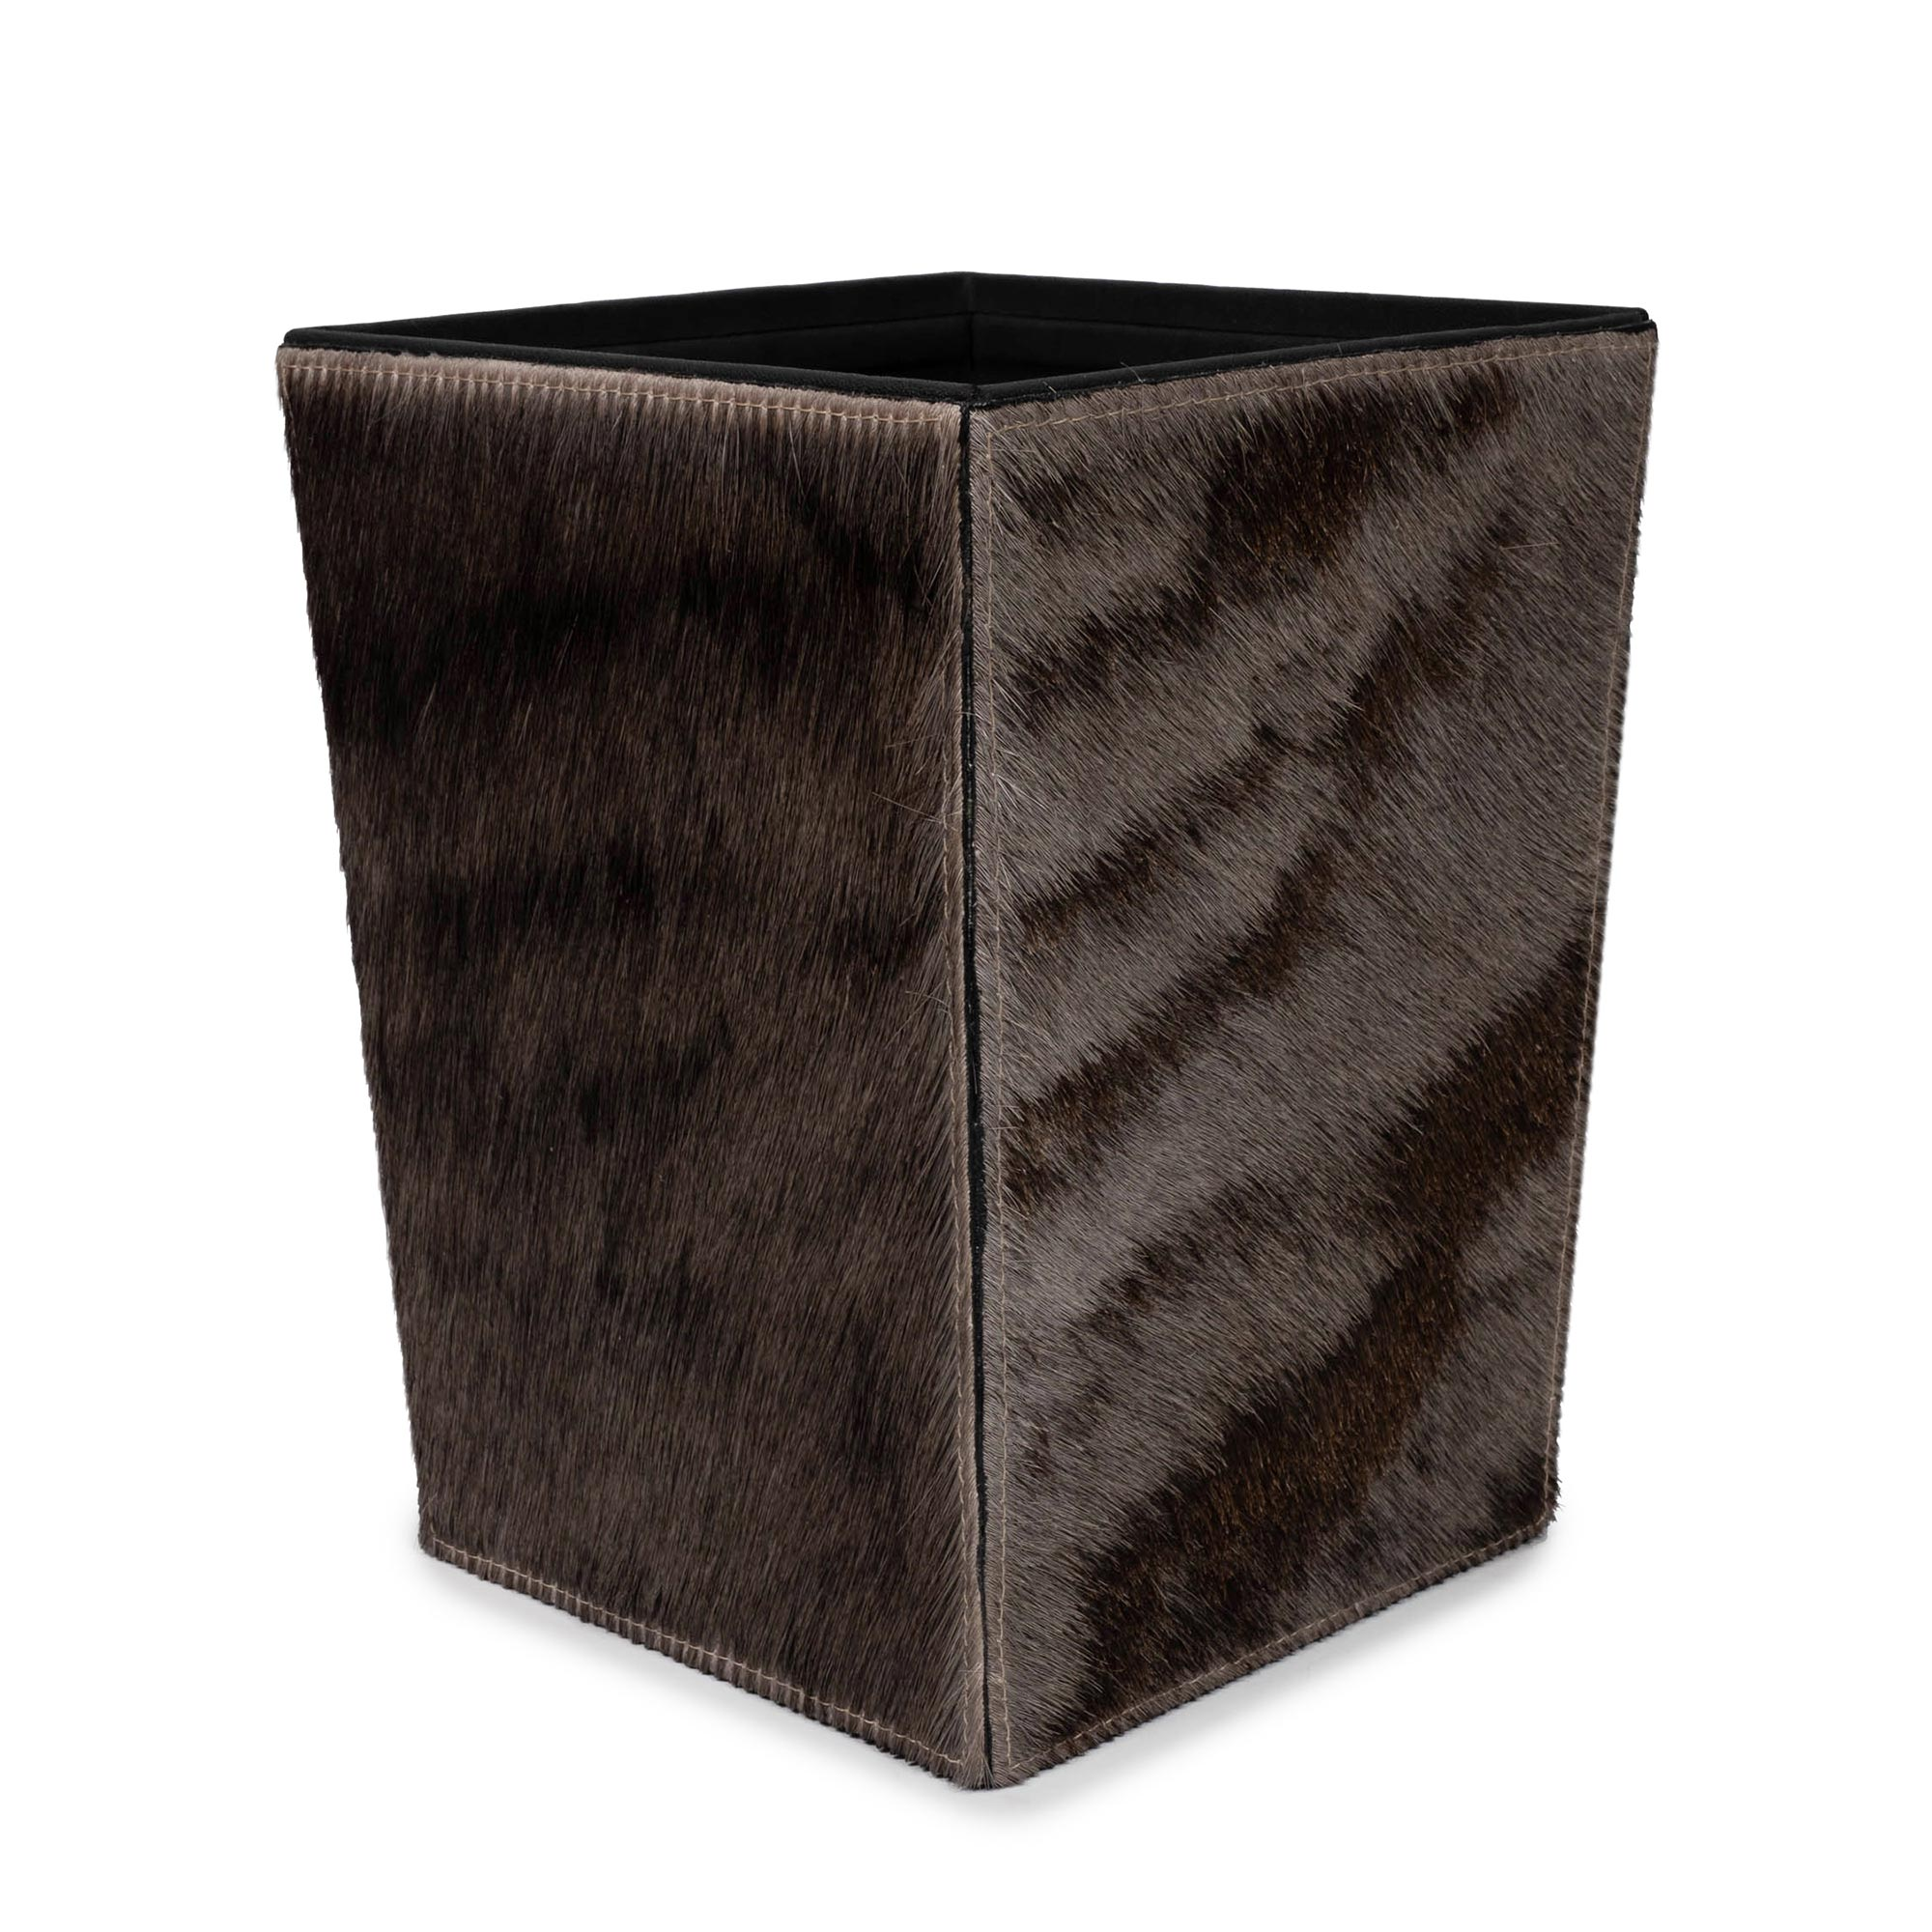 Waste Basket - Wildebeest Hide